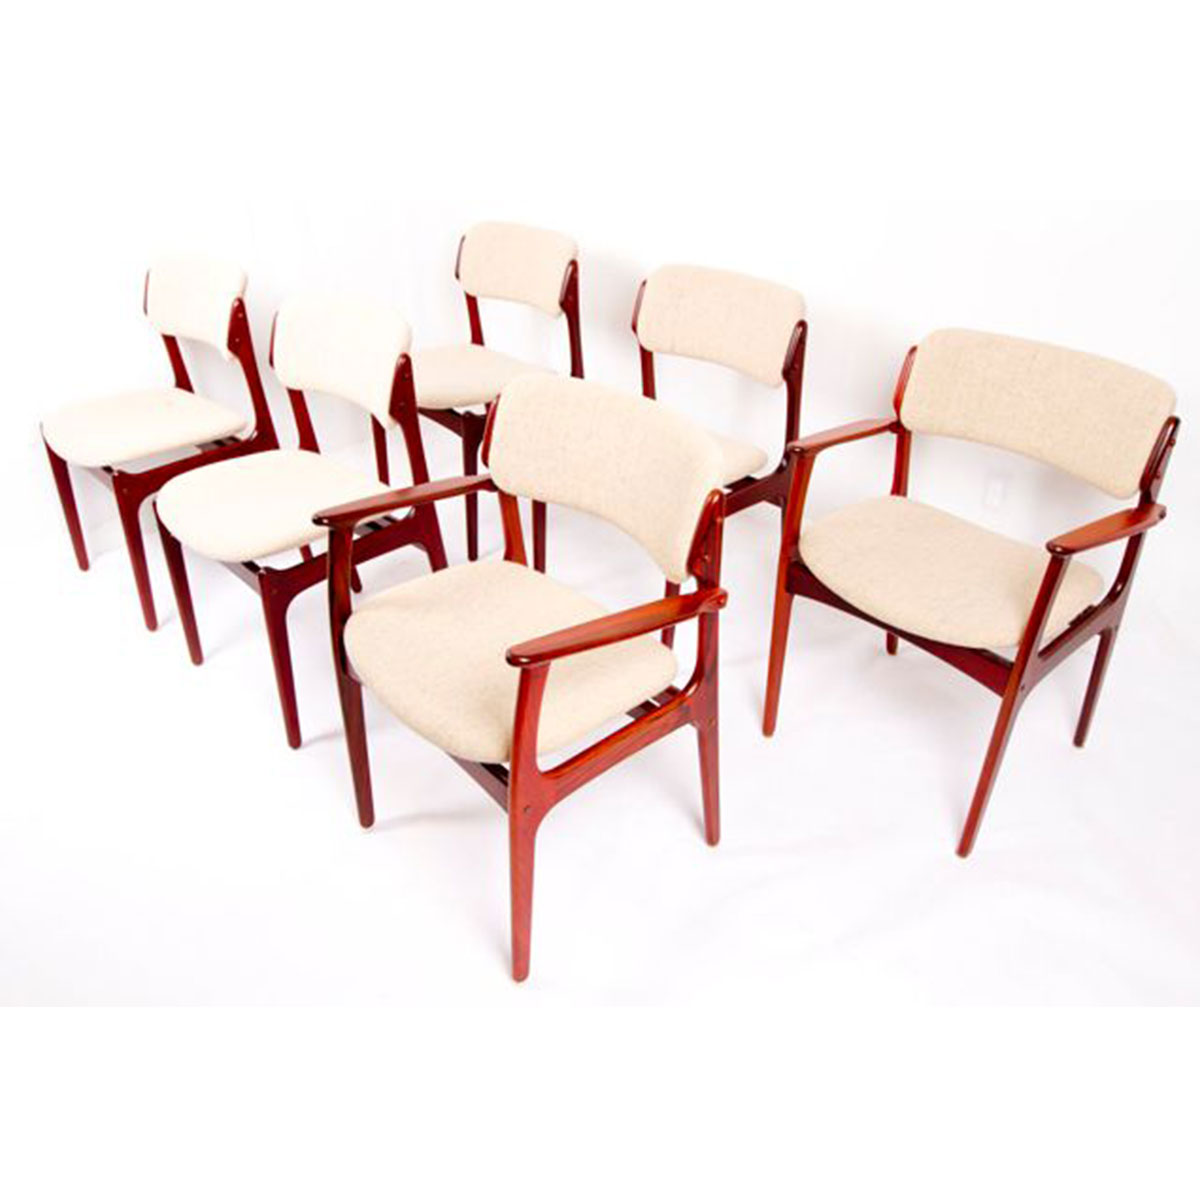 Set of 6 Erik Buch Danish Rosewood Dining Chairs